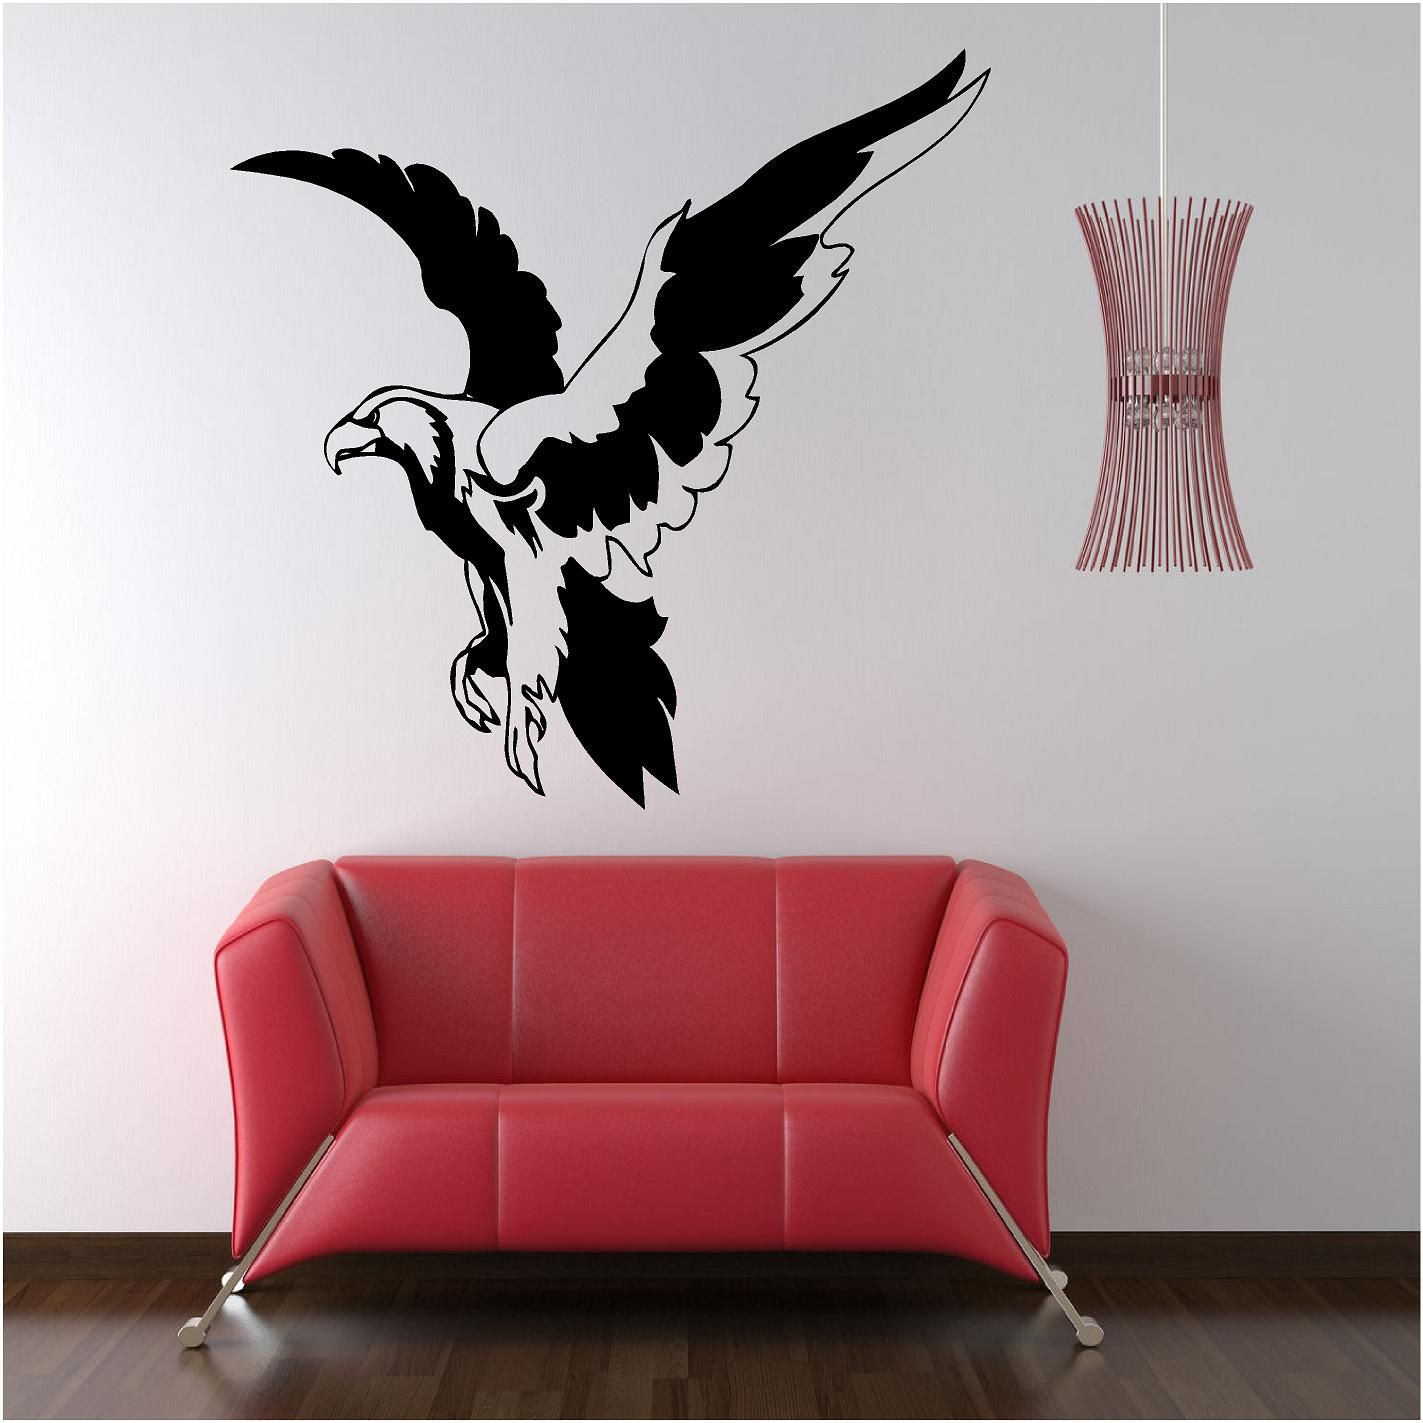 Eagle Our Designs Include Amazing Wall Stickers For Kids Wall - Custom custom vinyl wall decals uk